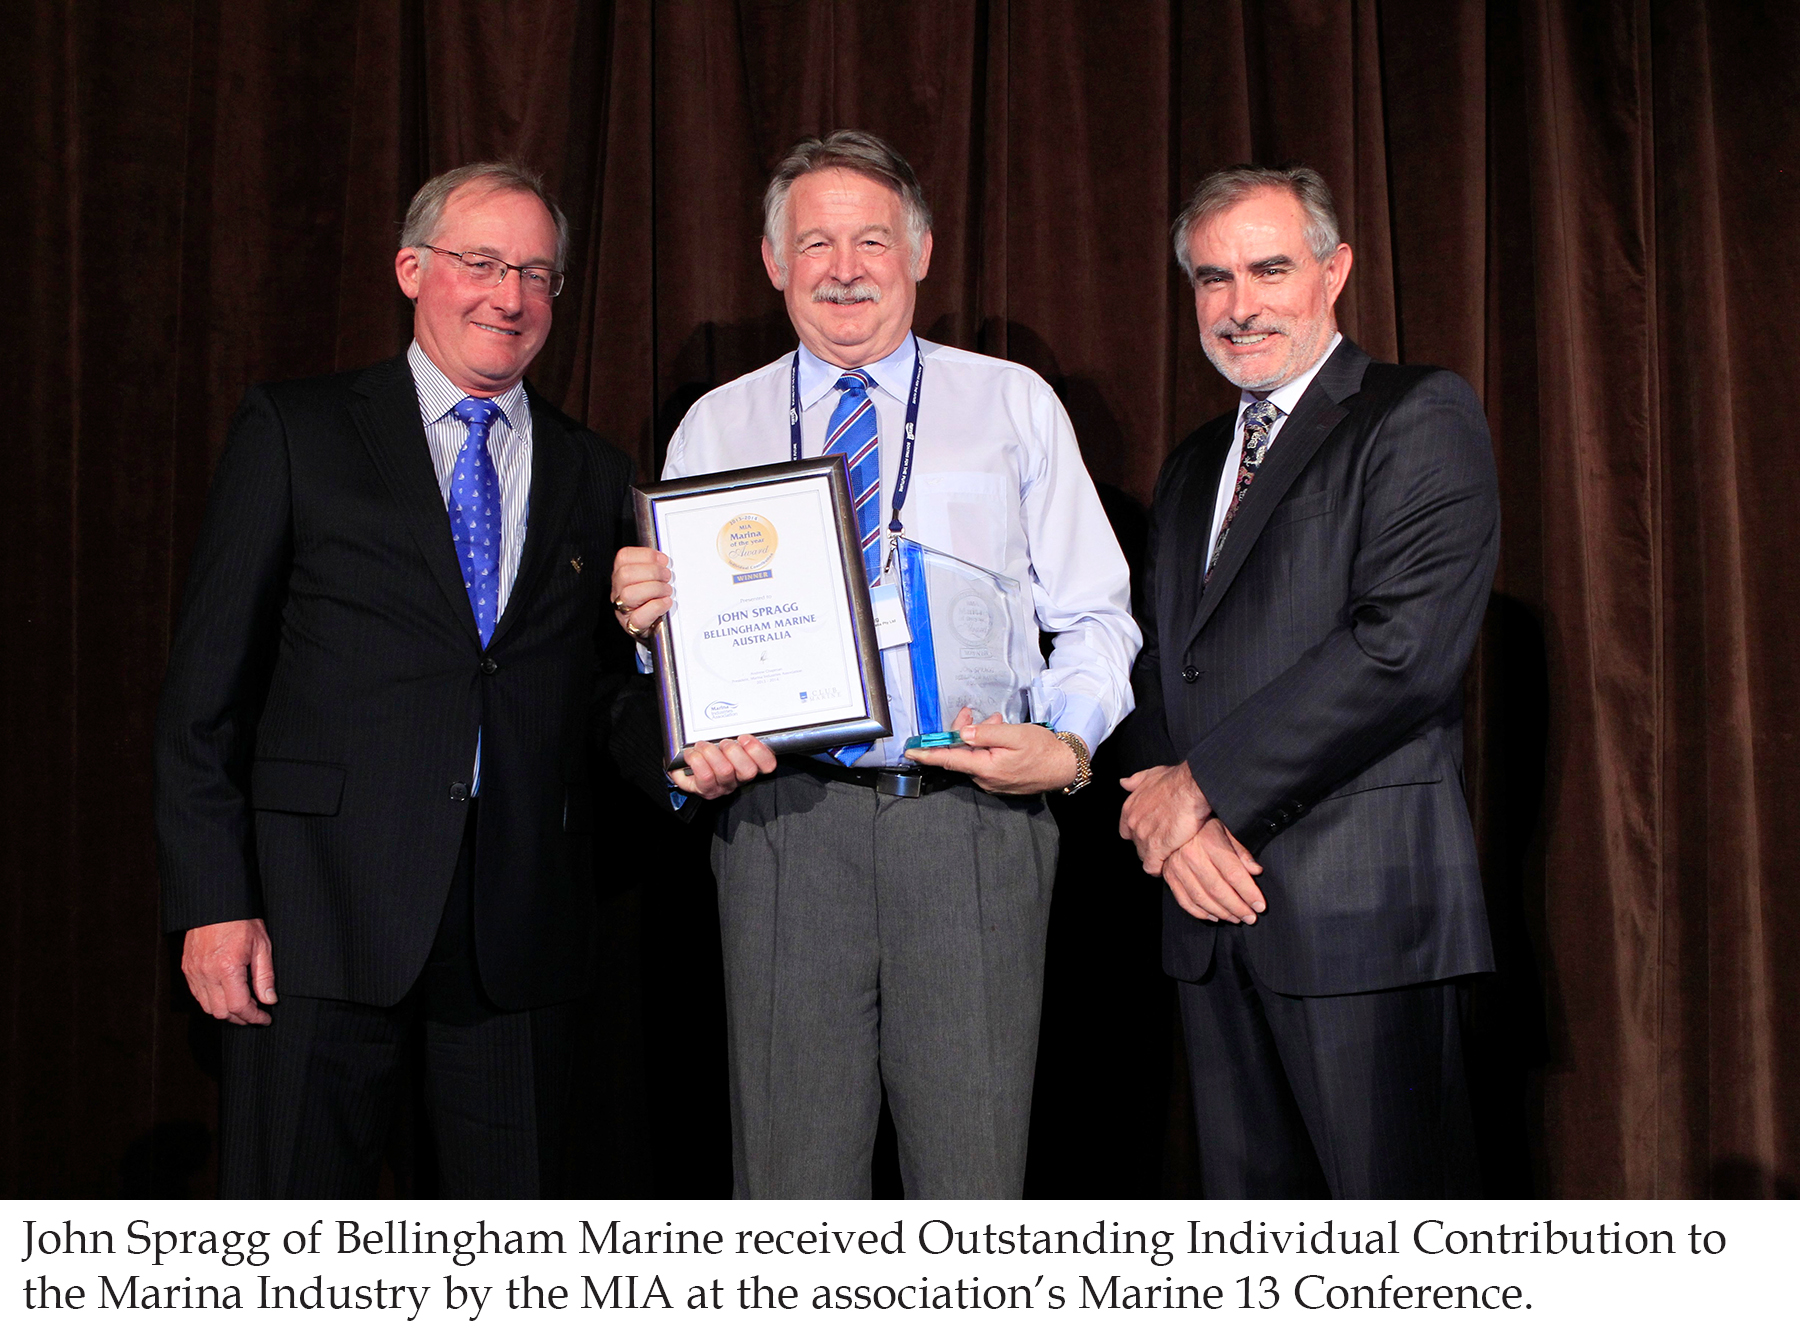 John Spragg received award for Outstanding Individual Contribution to the Marina Industry